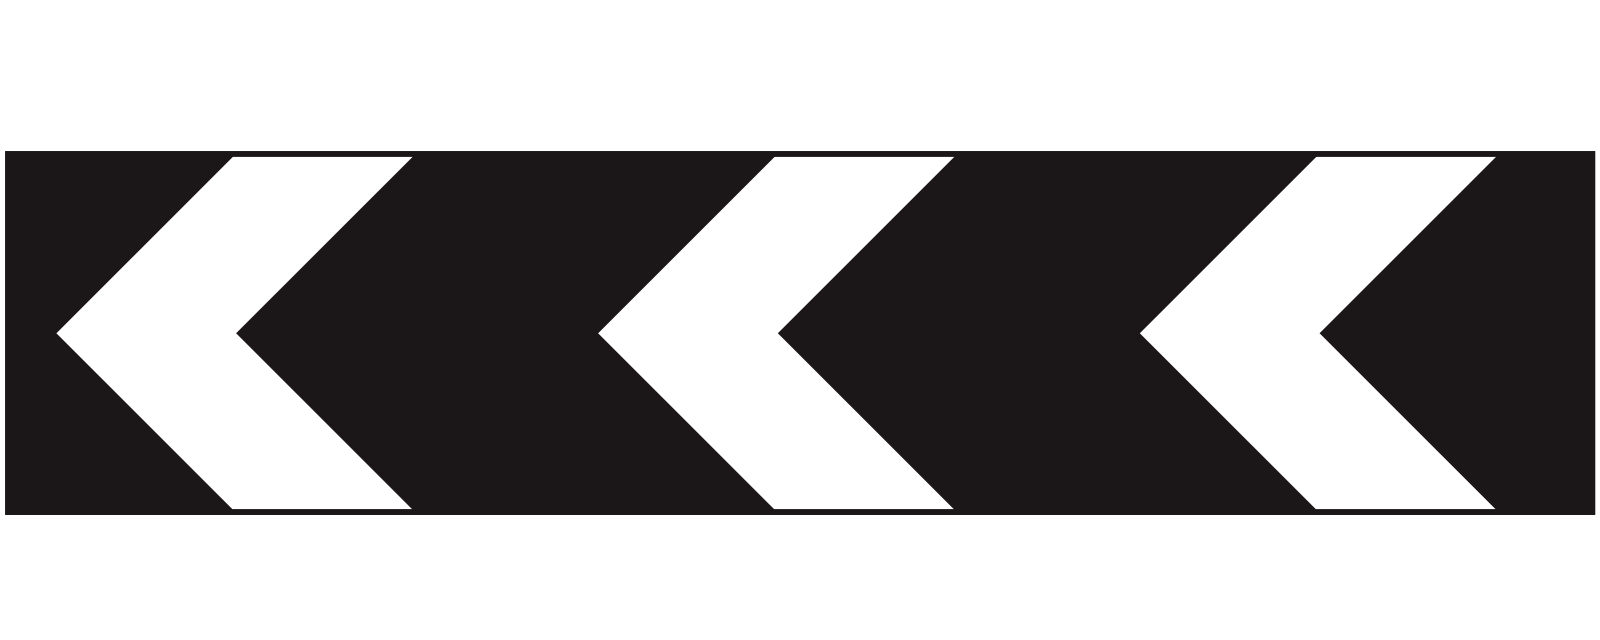 Sharp deviation to the left (right if chevrons are reversed) Road